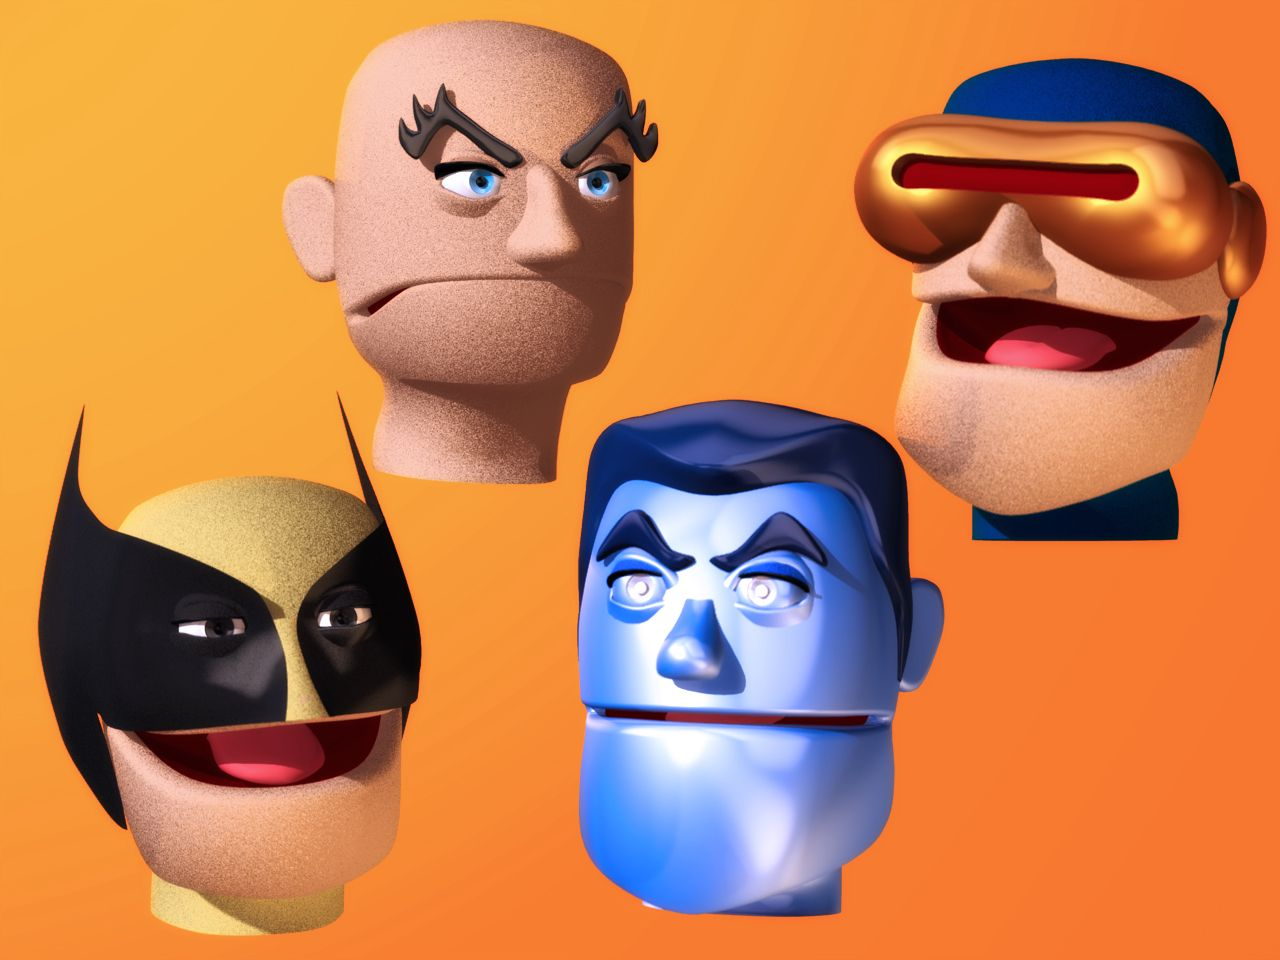 Puppet heads of some of the X-Men for the abandoned Giant Sized X-Men #1 parody.